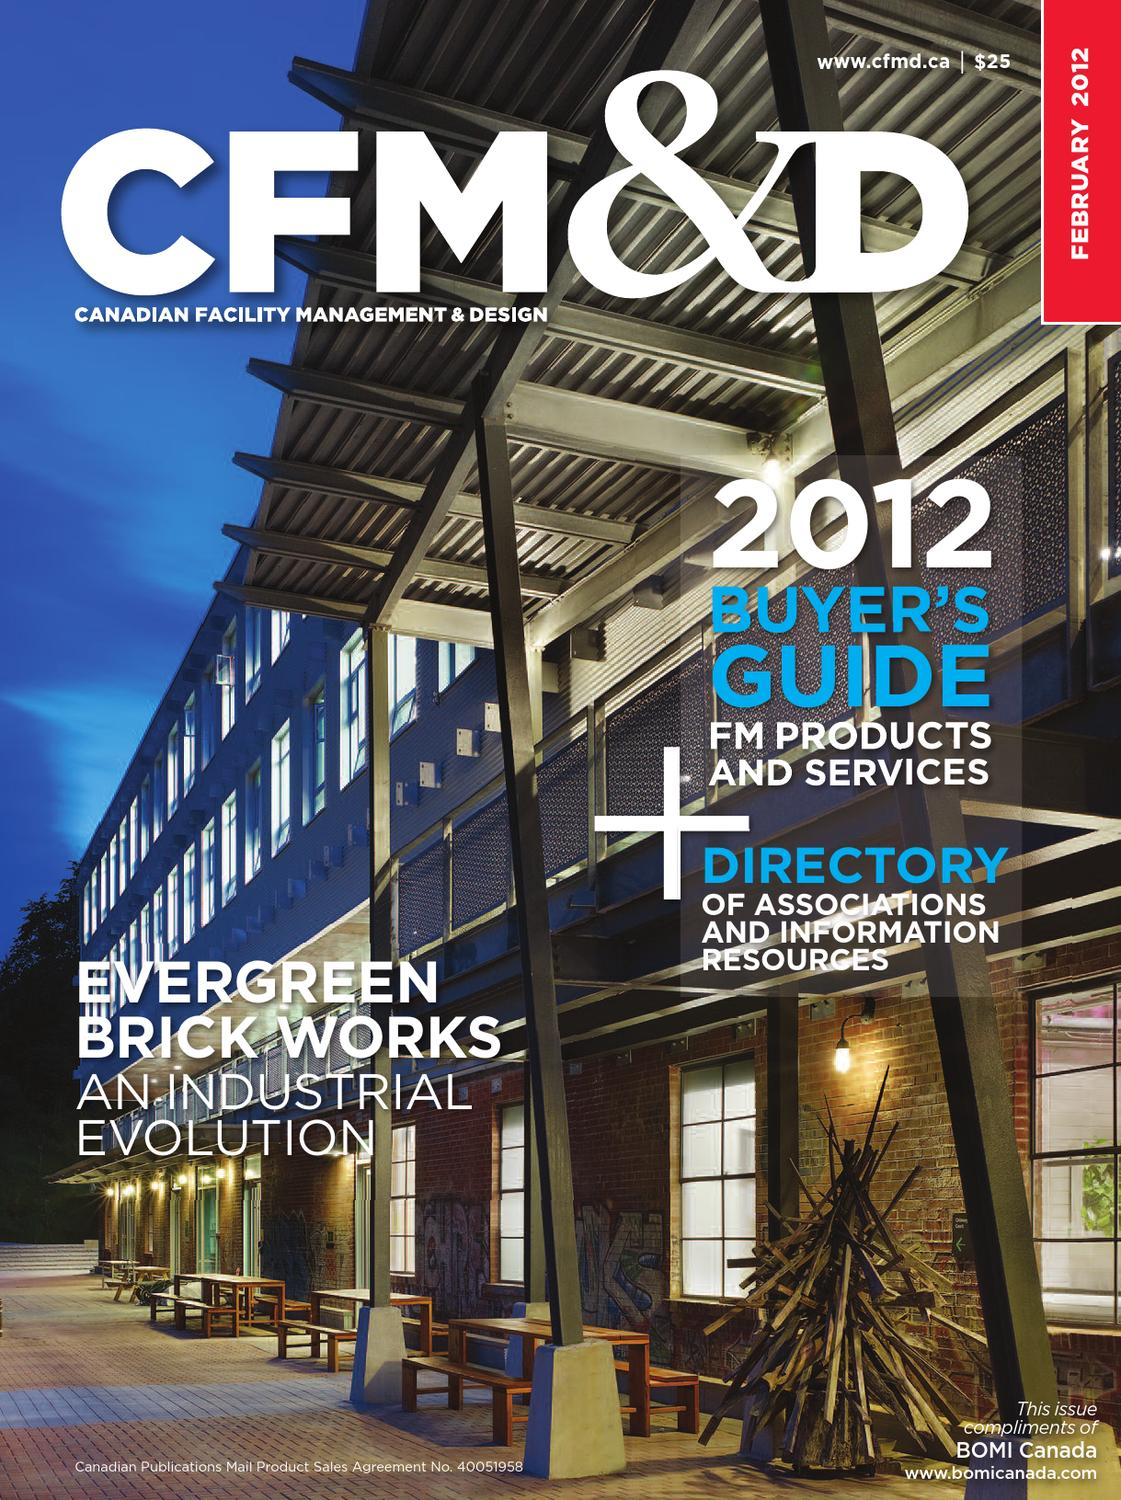 Canadian Facility Management & Design: 2012 Buyers Guide by